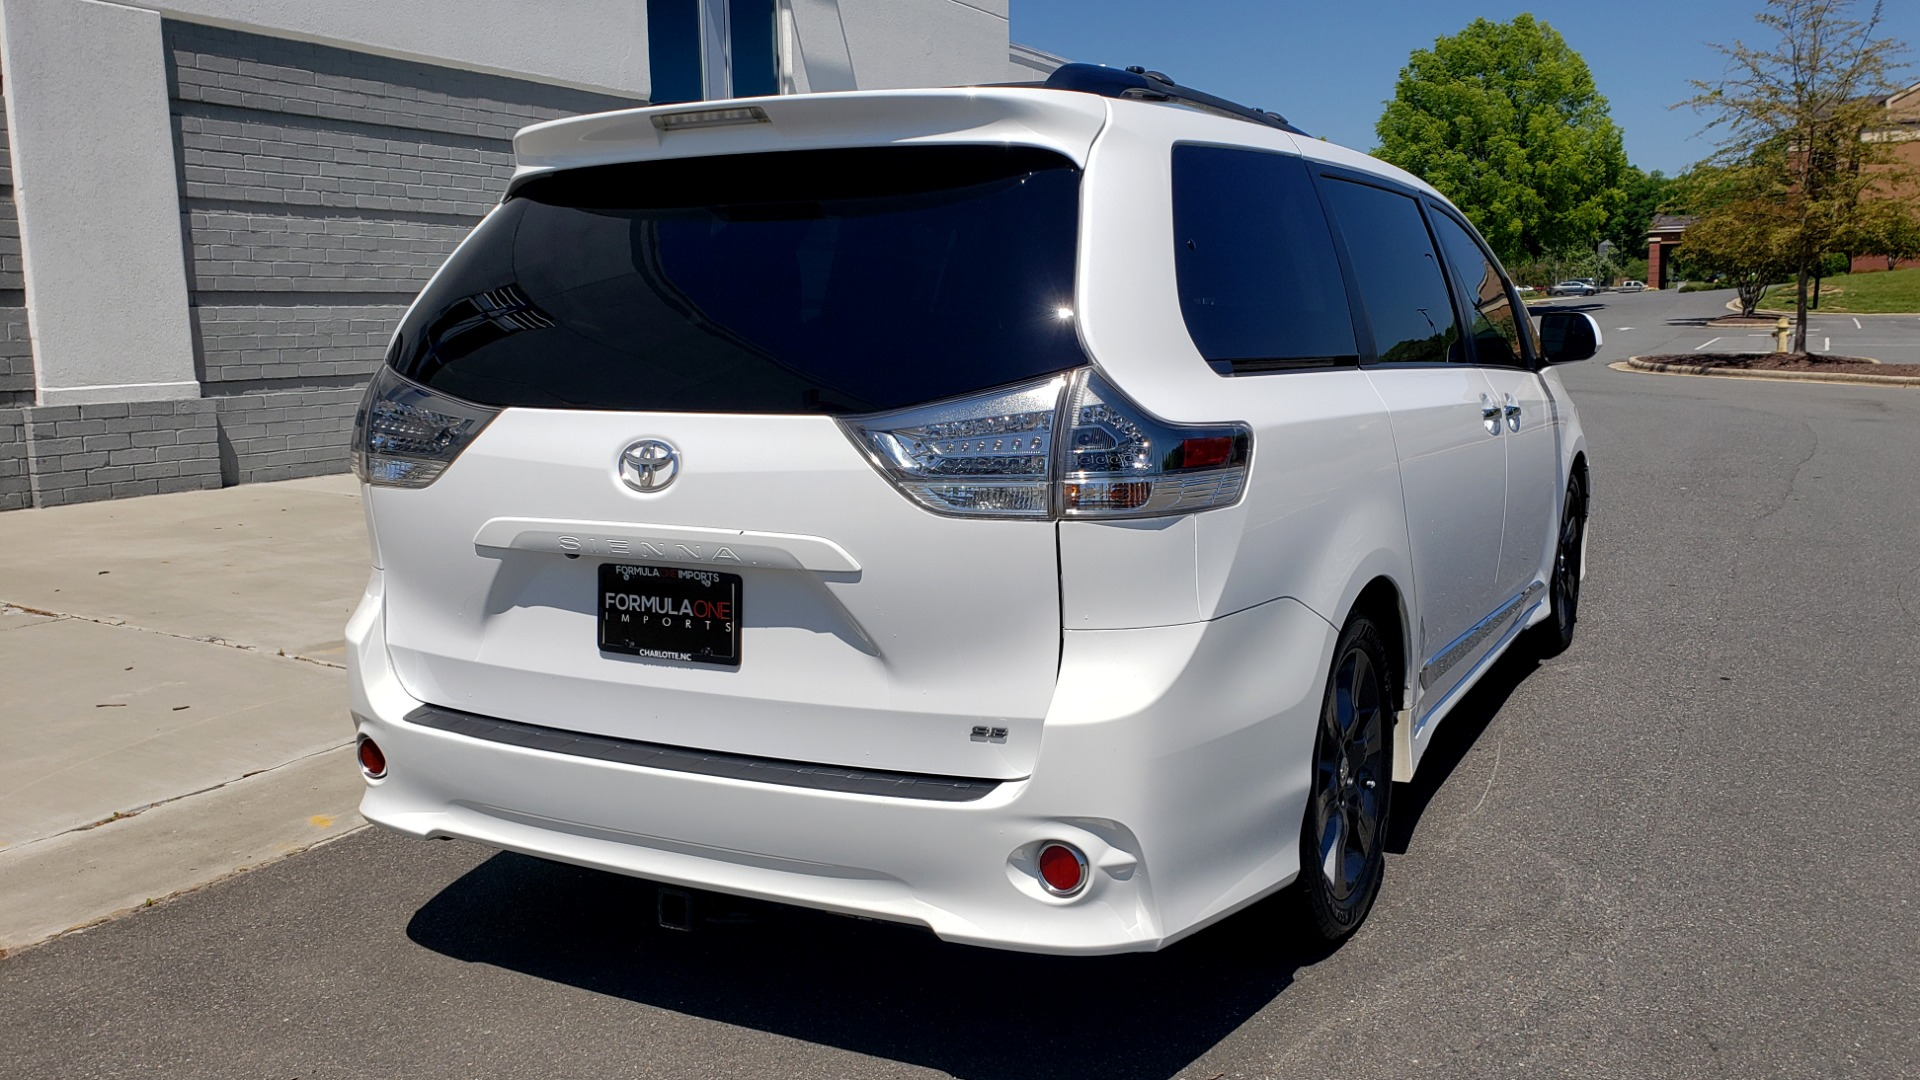 Used 2015 Toyota SIENNA SE 3.5L / FWD / 3-ROWS / 8-PASS / SUNROOF / DVD / REARVIEW for sale $21,995 at Formula Imports in Charlotte NC 28227 8